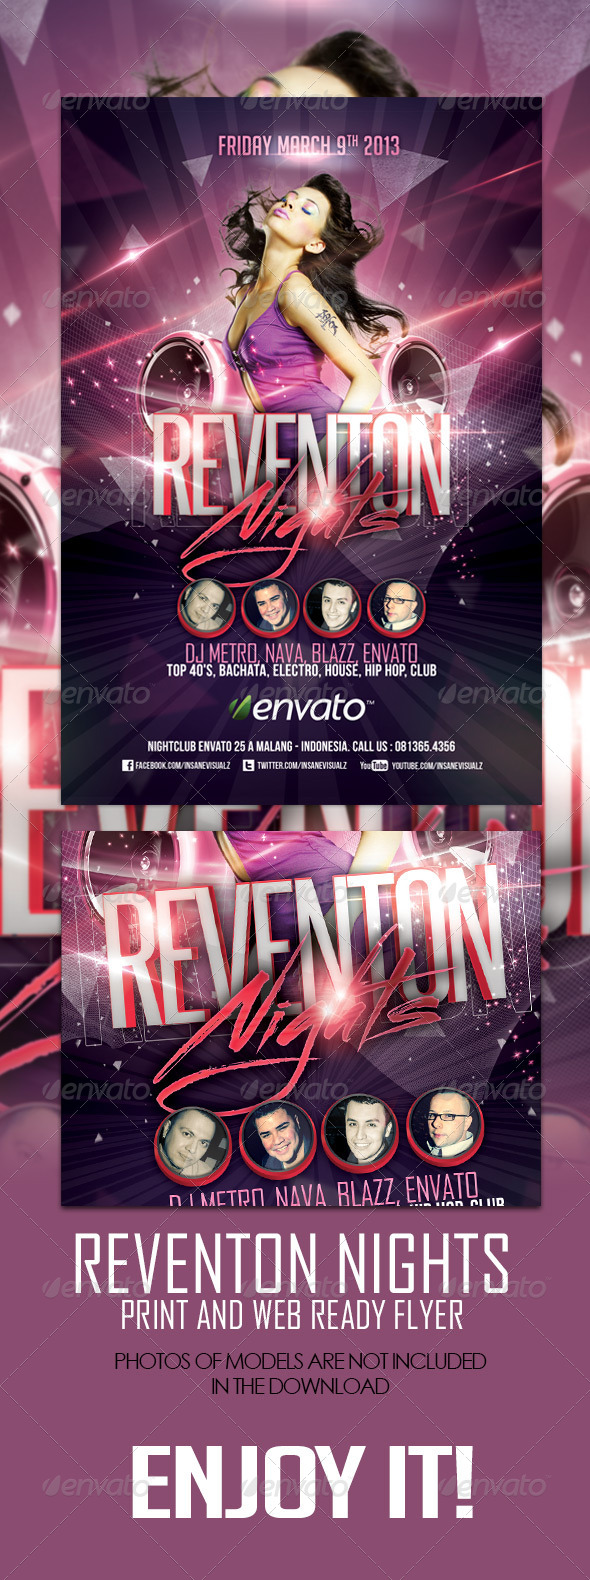 Reventon Nights Flyer - Flyers Print Templates